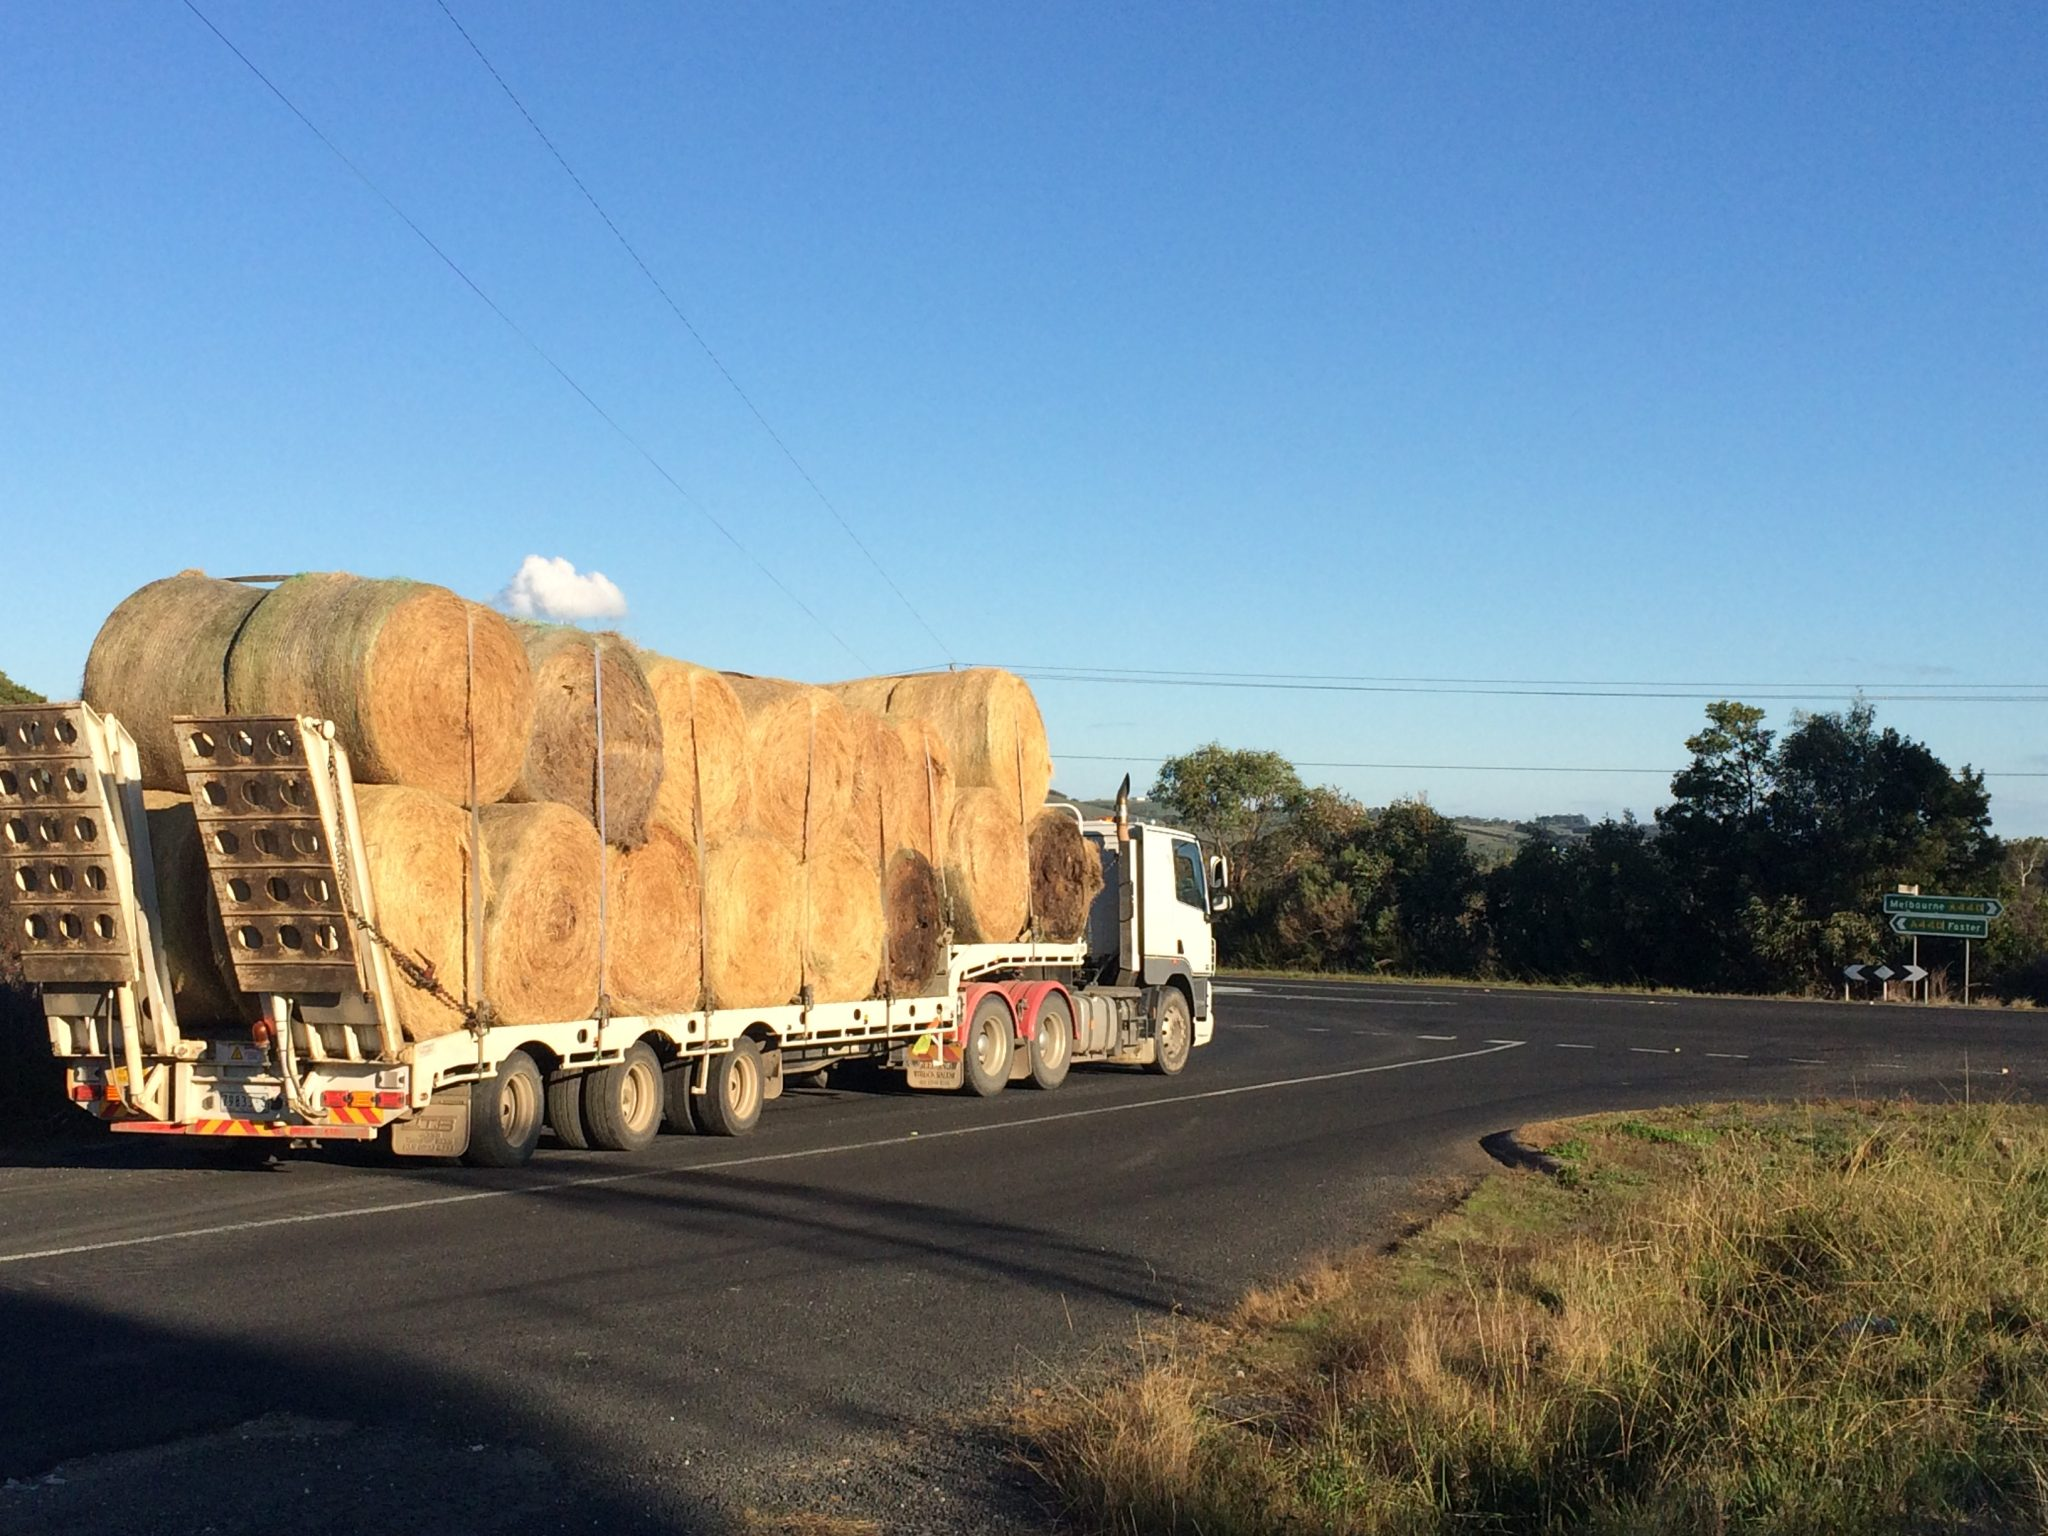 cartage-machinery-transport-carting-round-bales-of-hay